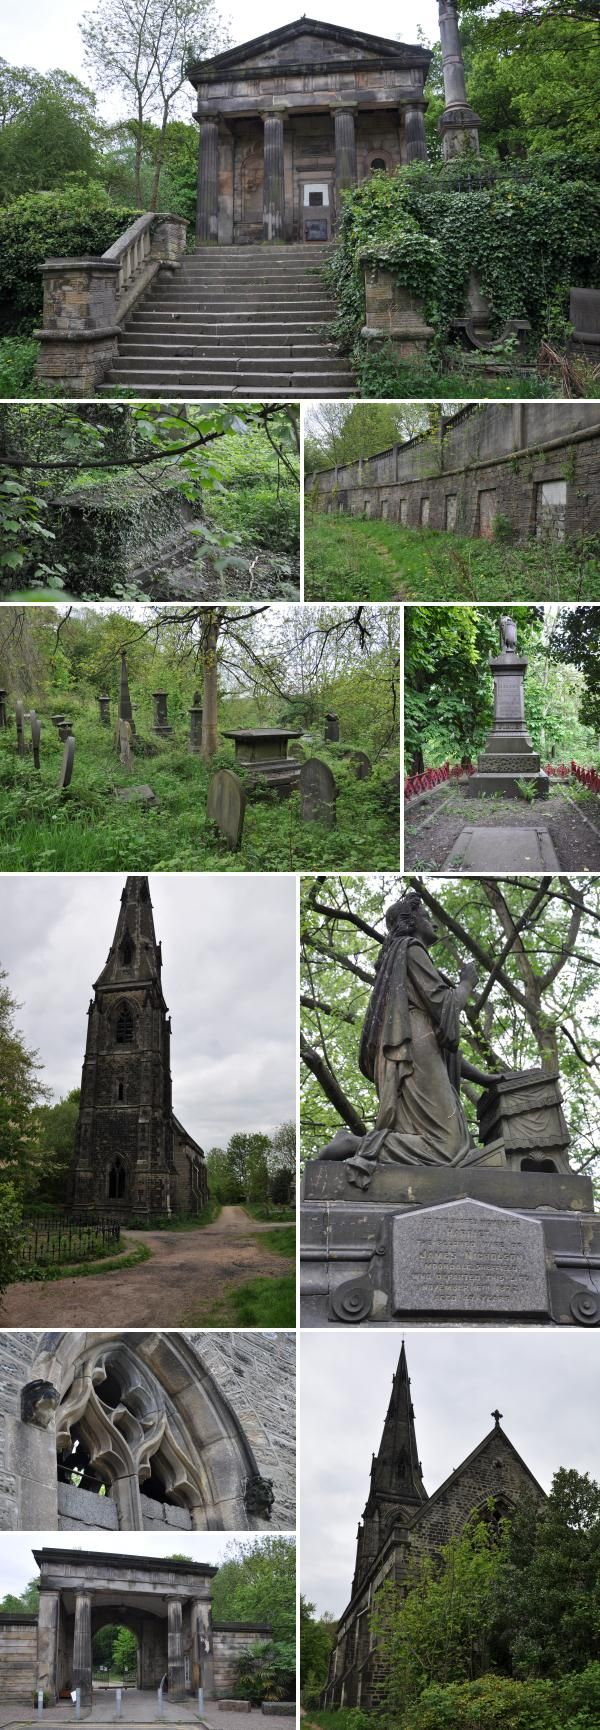 The General Cemetery opened in 1836 as a Nonconformist burial ground, one of the first landscape cemeteries marking a shift away from overcrowded chuchyards.